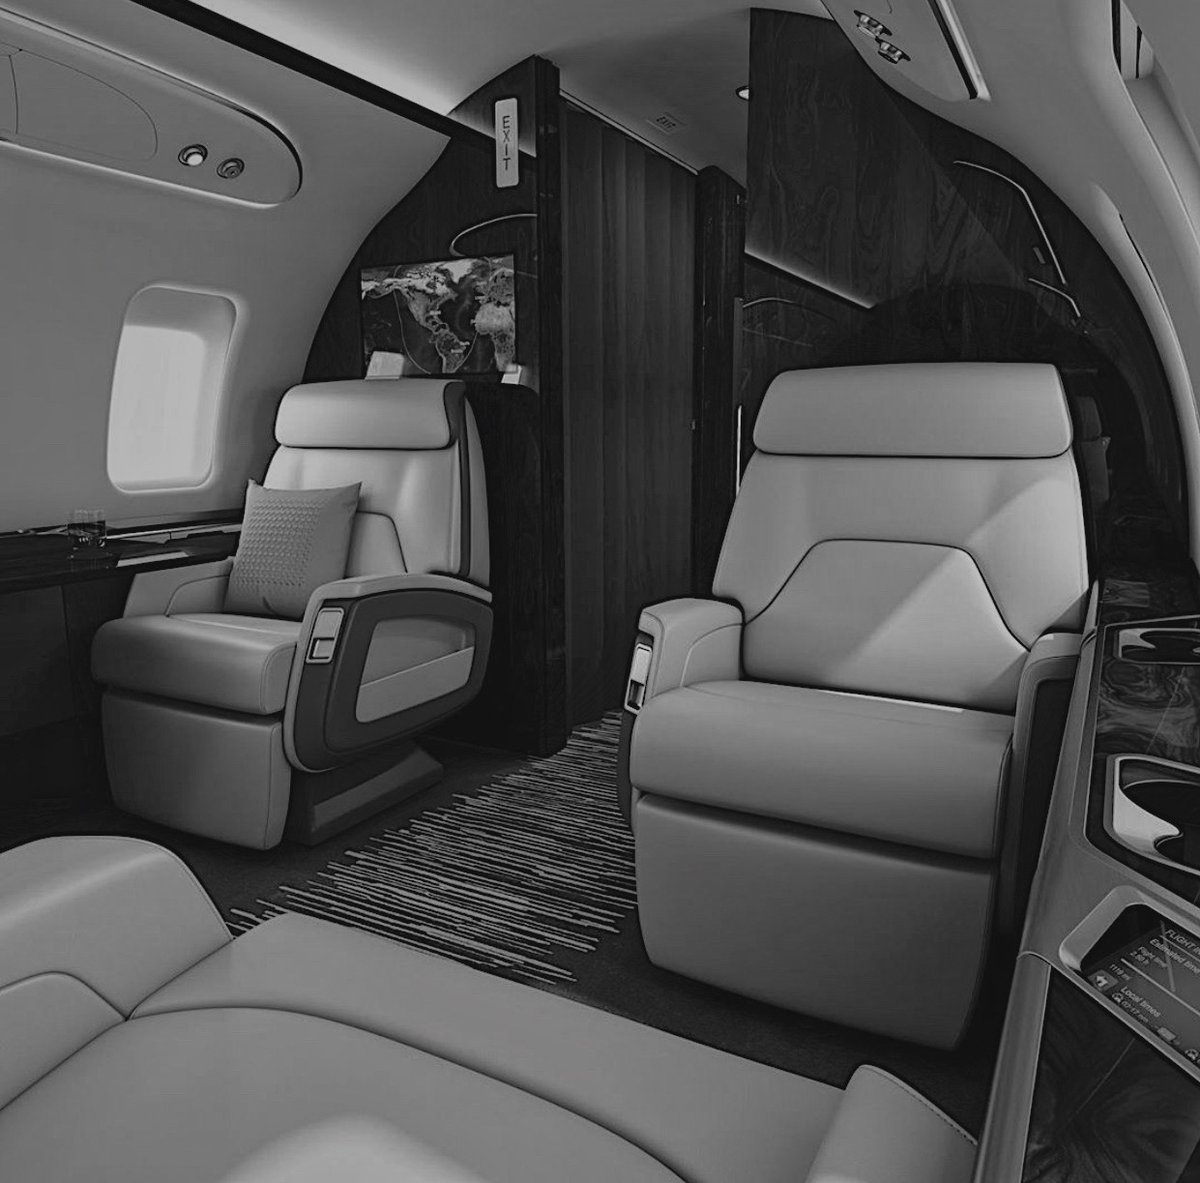 Fly with no regrets. Fly with FlyBLACK. . . . . . #vacation #privatecharter #travel #takeoffpic.twitter.com/ToV2tJIg36